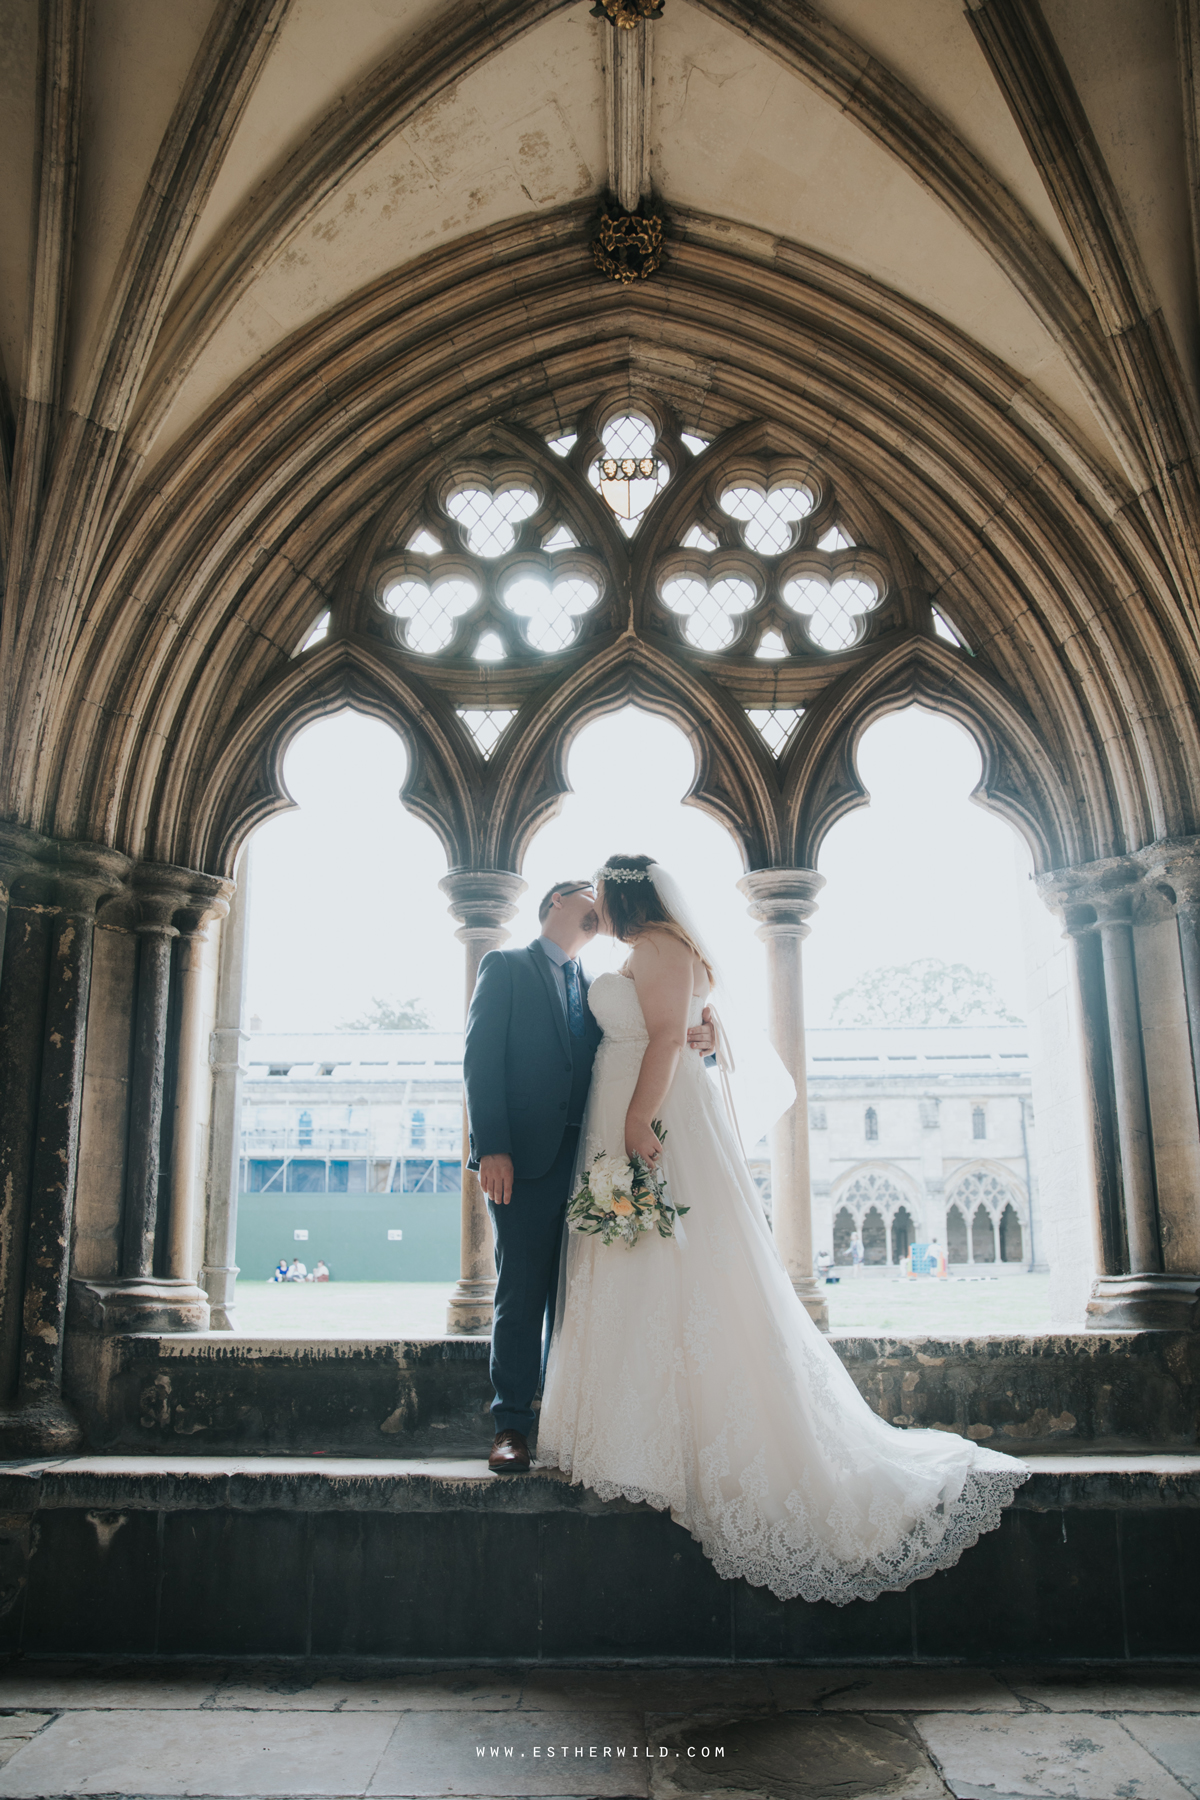 Norwich_Castle_Arcade_Grosvenor_Chip_Birdcage_Cathedral_Cloisters_Refectory_Wedding_Photography_Esther_Wild_Photographer_Norfolk_Kings_Lynn_3R8A1855.jpg